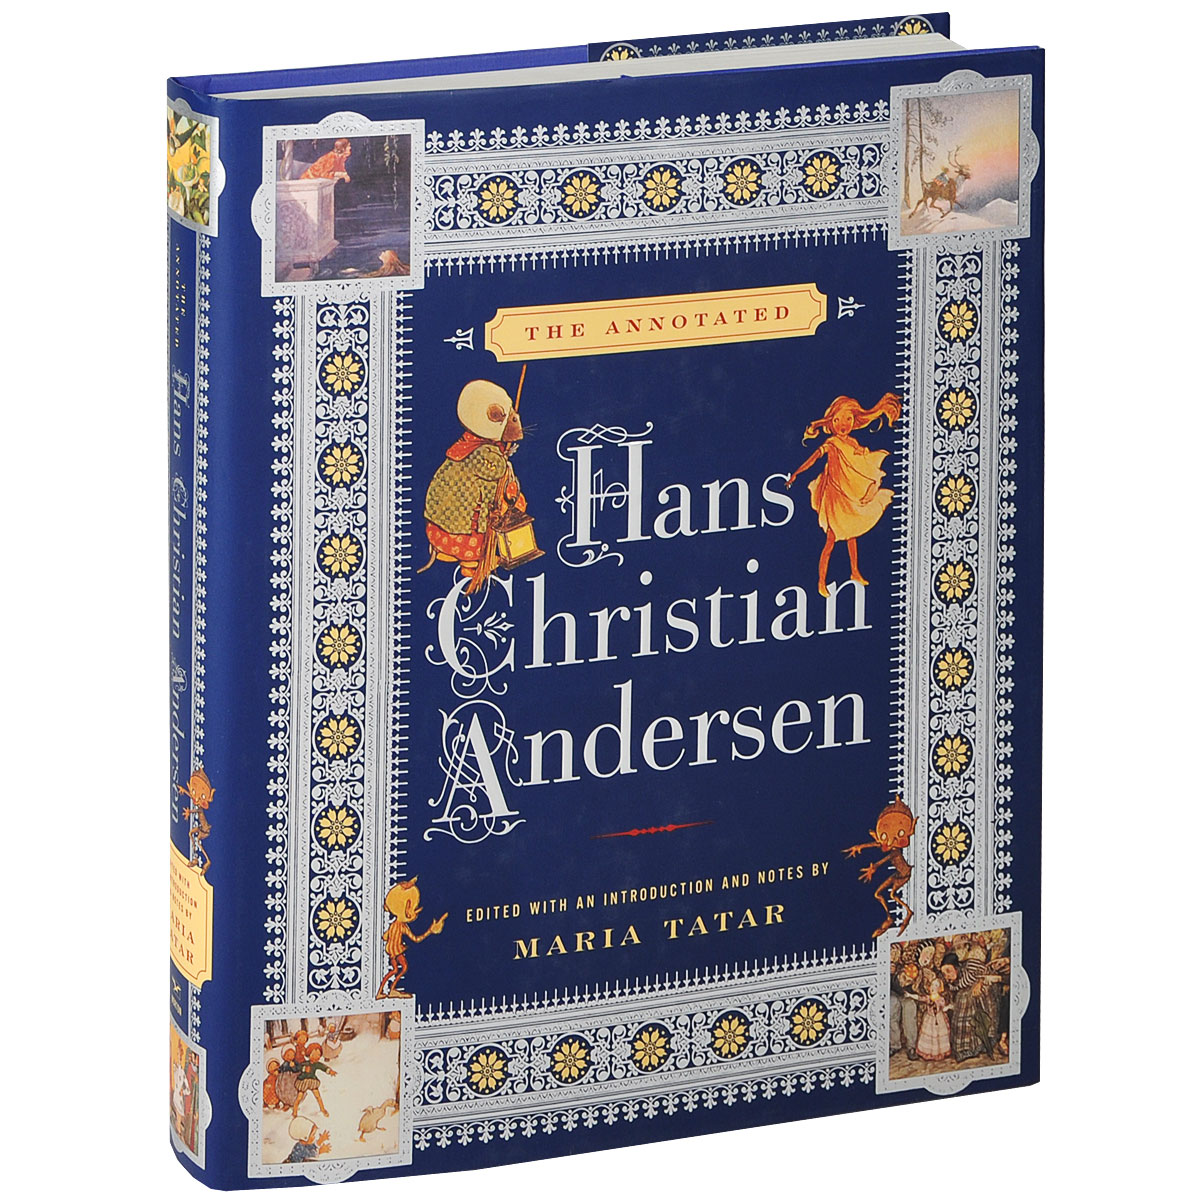 The Annotated Hans Christian Andersen аккумулятор topon top ac1830 для acer aspire one 721 753 timelinex 1551 1830t series аккумулятор для 11 1v 4400mah tc pn al10c31